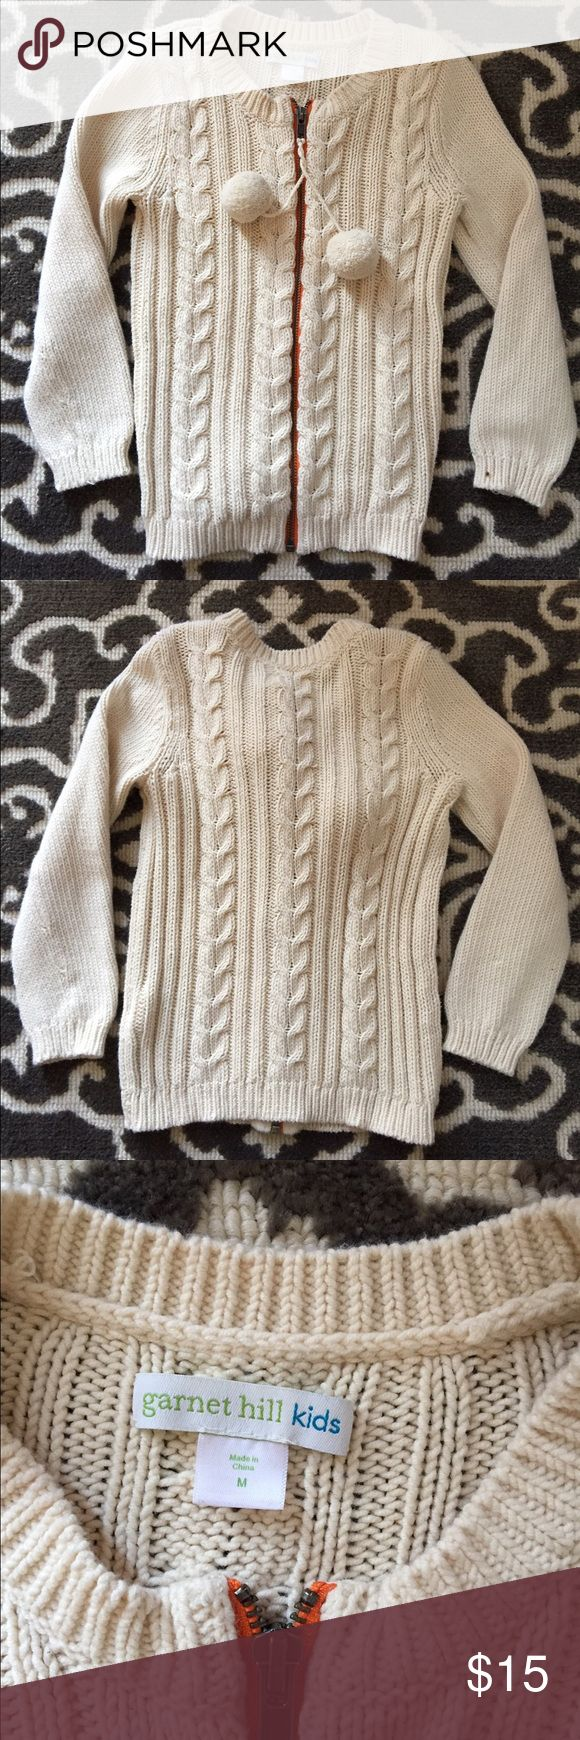 Garnet Hill Kids cream zip up sweater Super cute cream zip up sweater with poms. Kids size M - fits about 6-7. Excellent used condition Garnet Hill Kids Shirts & Tops Sweaters